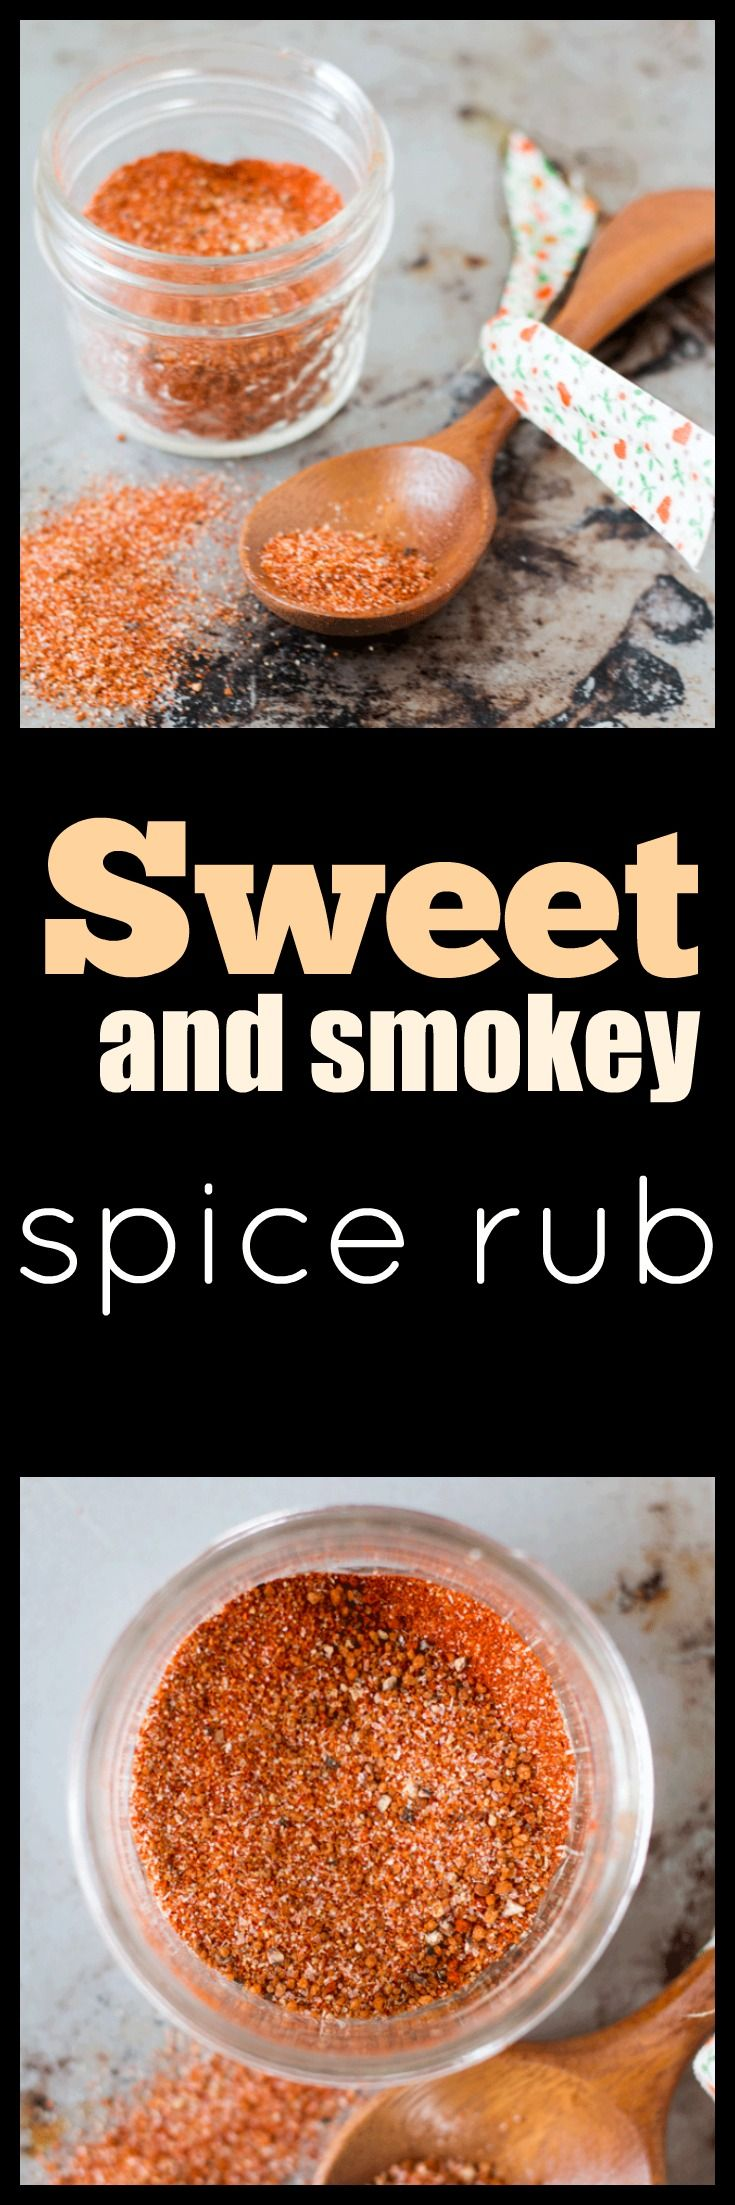 Blue apron quesadilla spice blend - A Gorgeous Sweet And Smokey Spice Rub For Infusing Flavor Into Meats And Vegetables Perfect